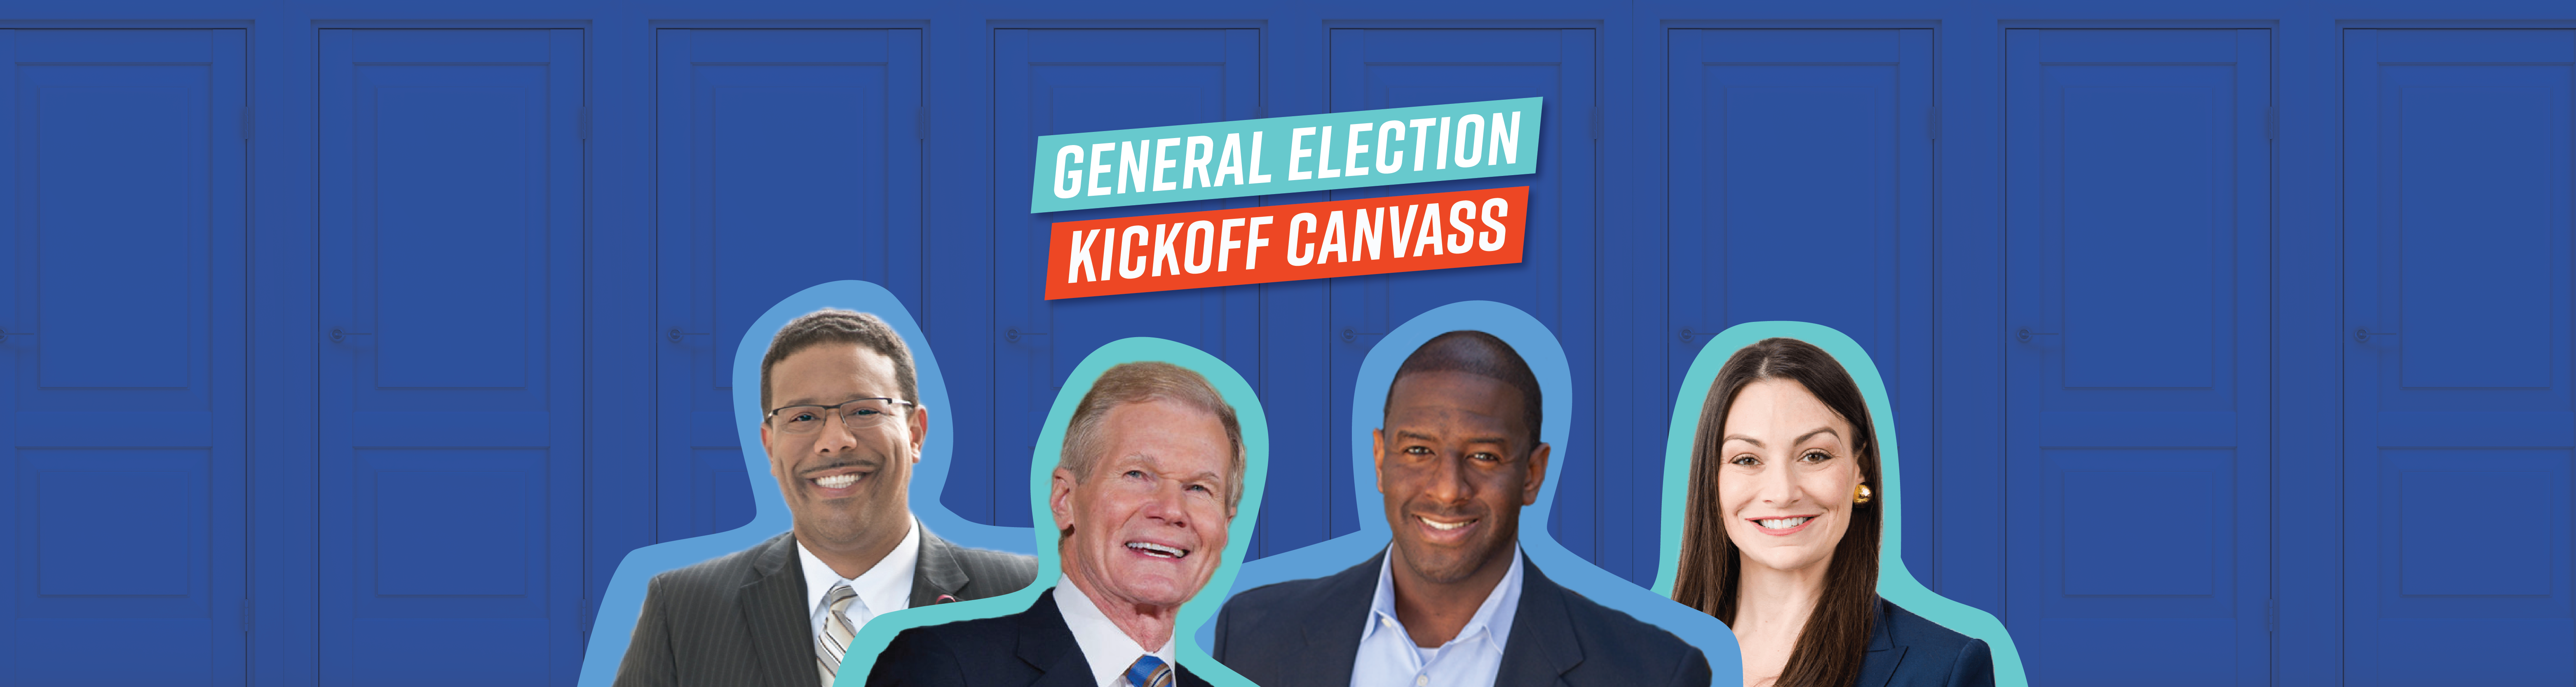 General_election_kickoff_canvass_action_network_photo-01